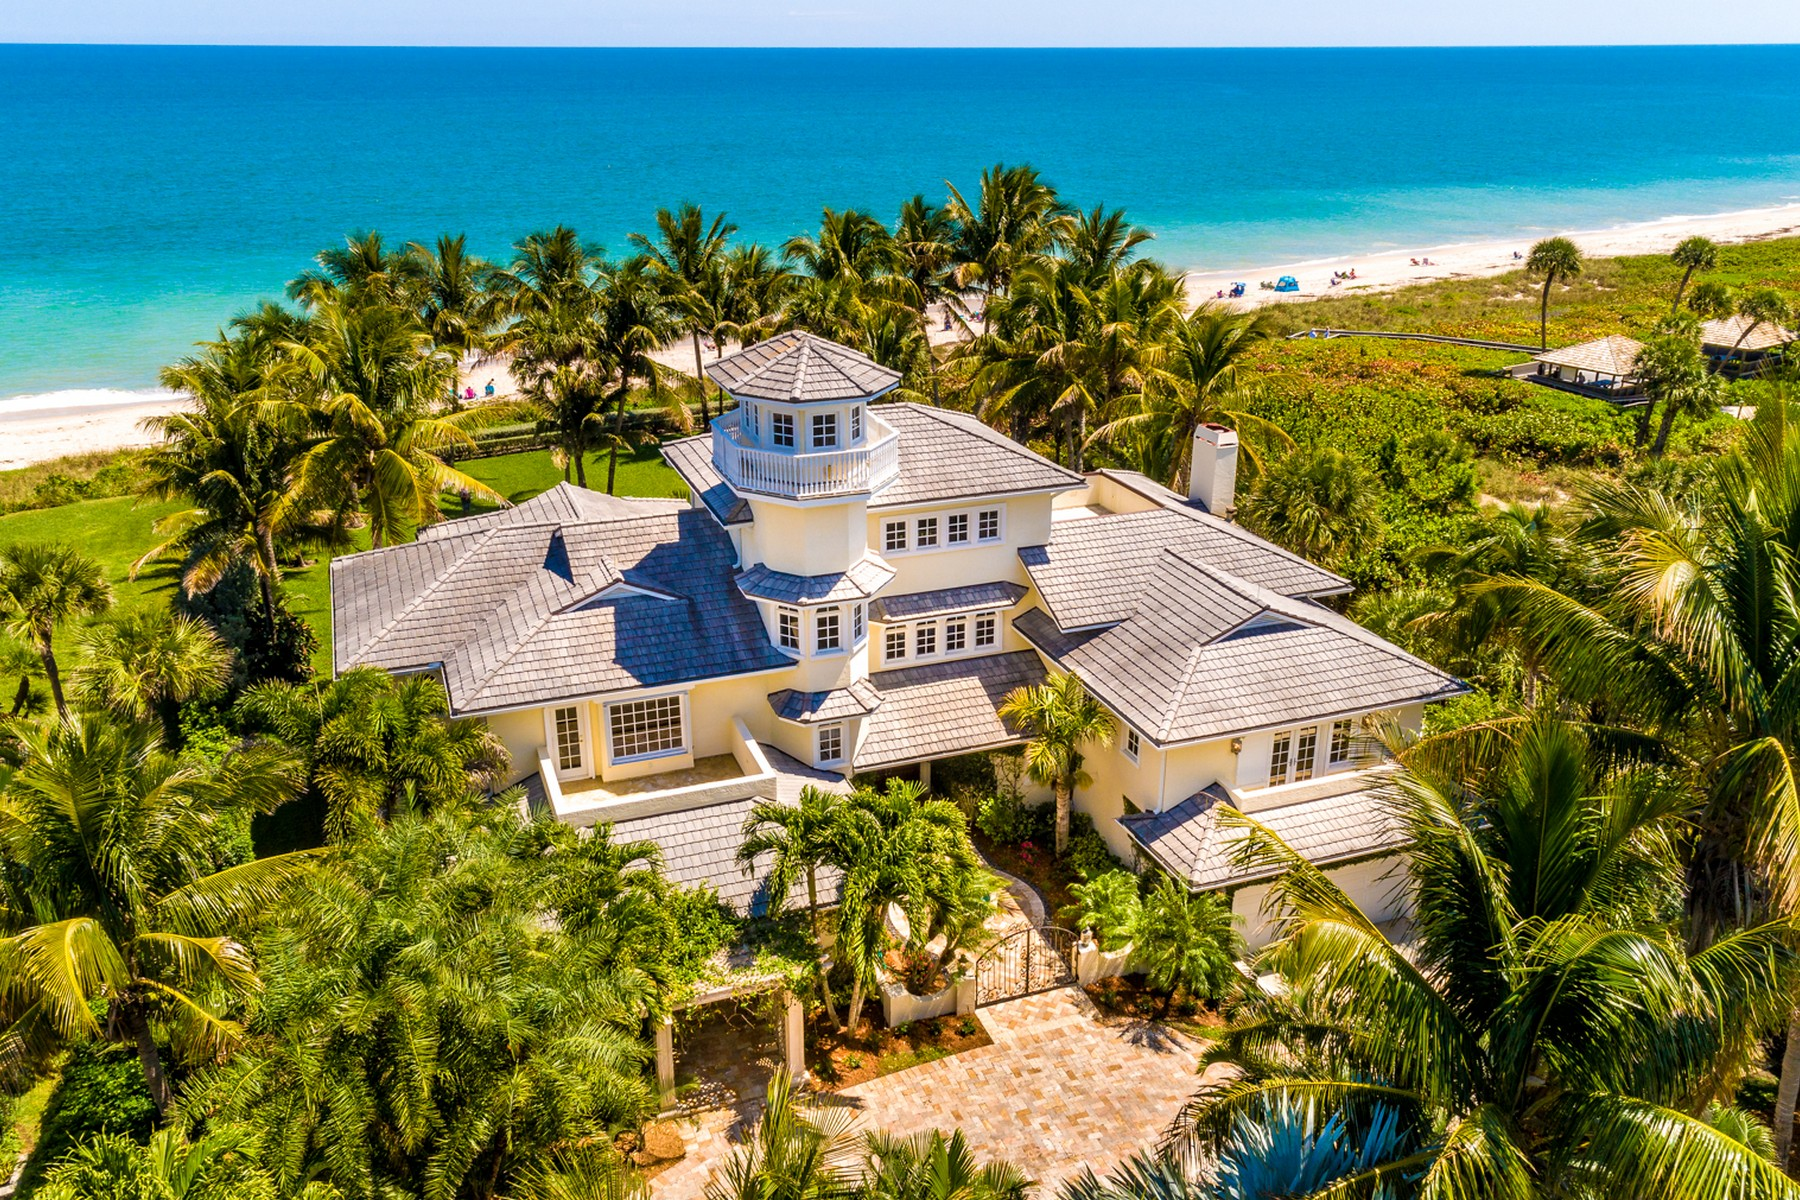 Property para Venda às Magnificent Oceanfront Estate 960 Reef Road Vero Beach, Florida 32963 Estados Unidos